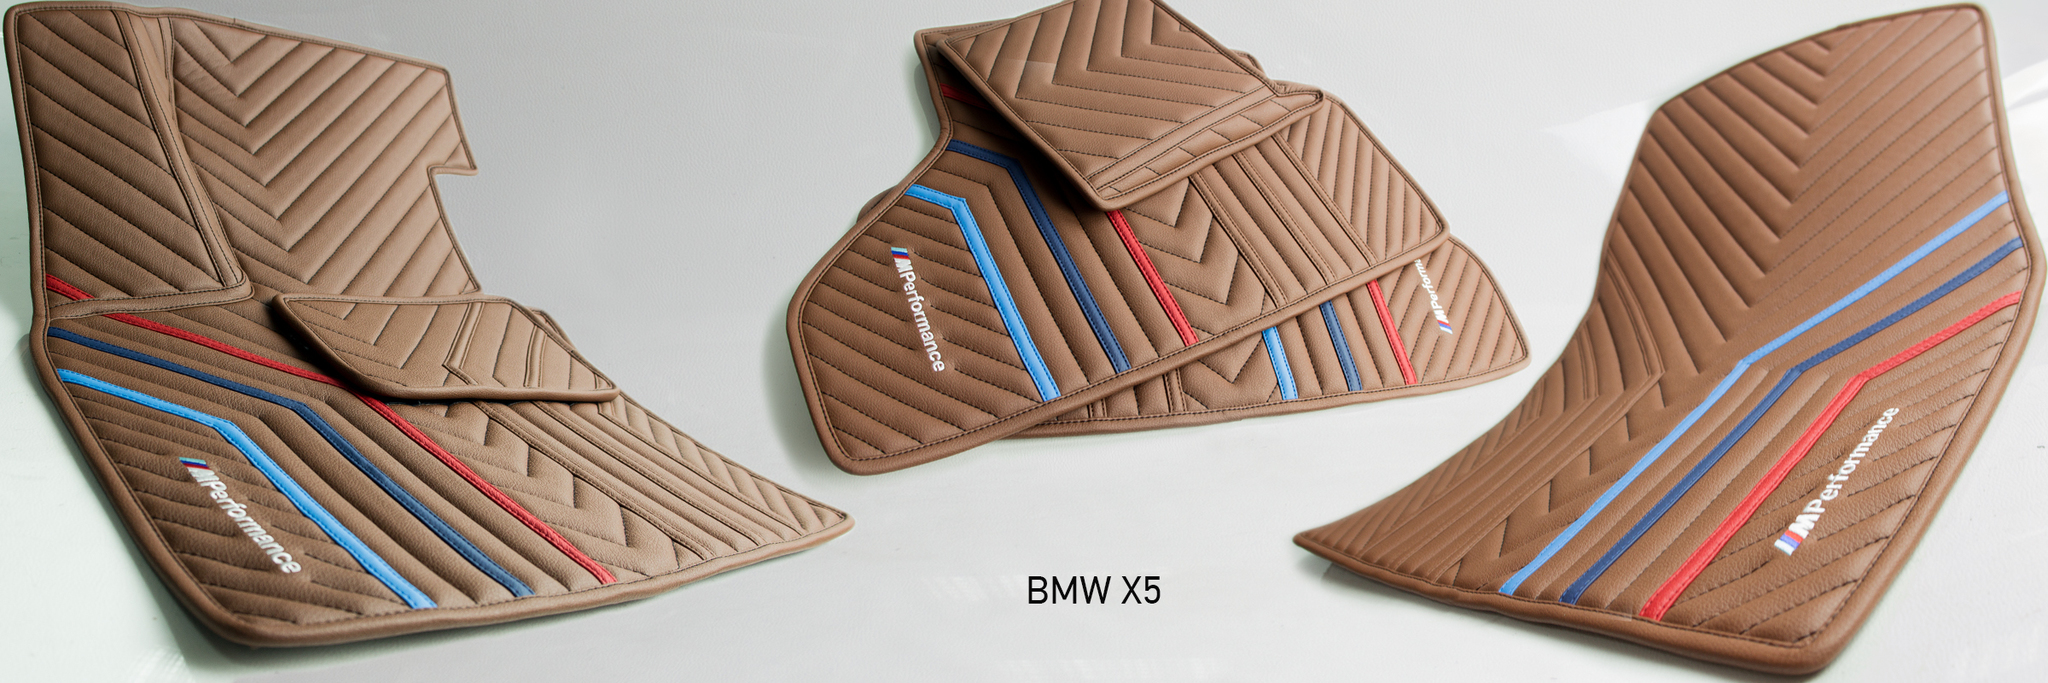 images-products-1-7883-232988363-BMW_X5__2_.jpg